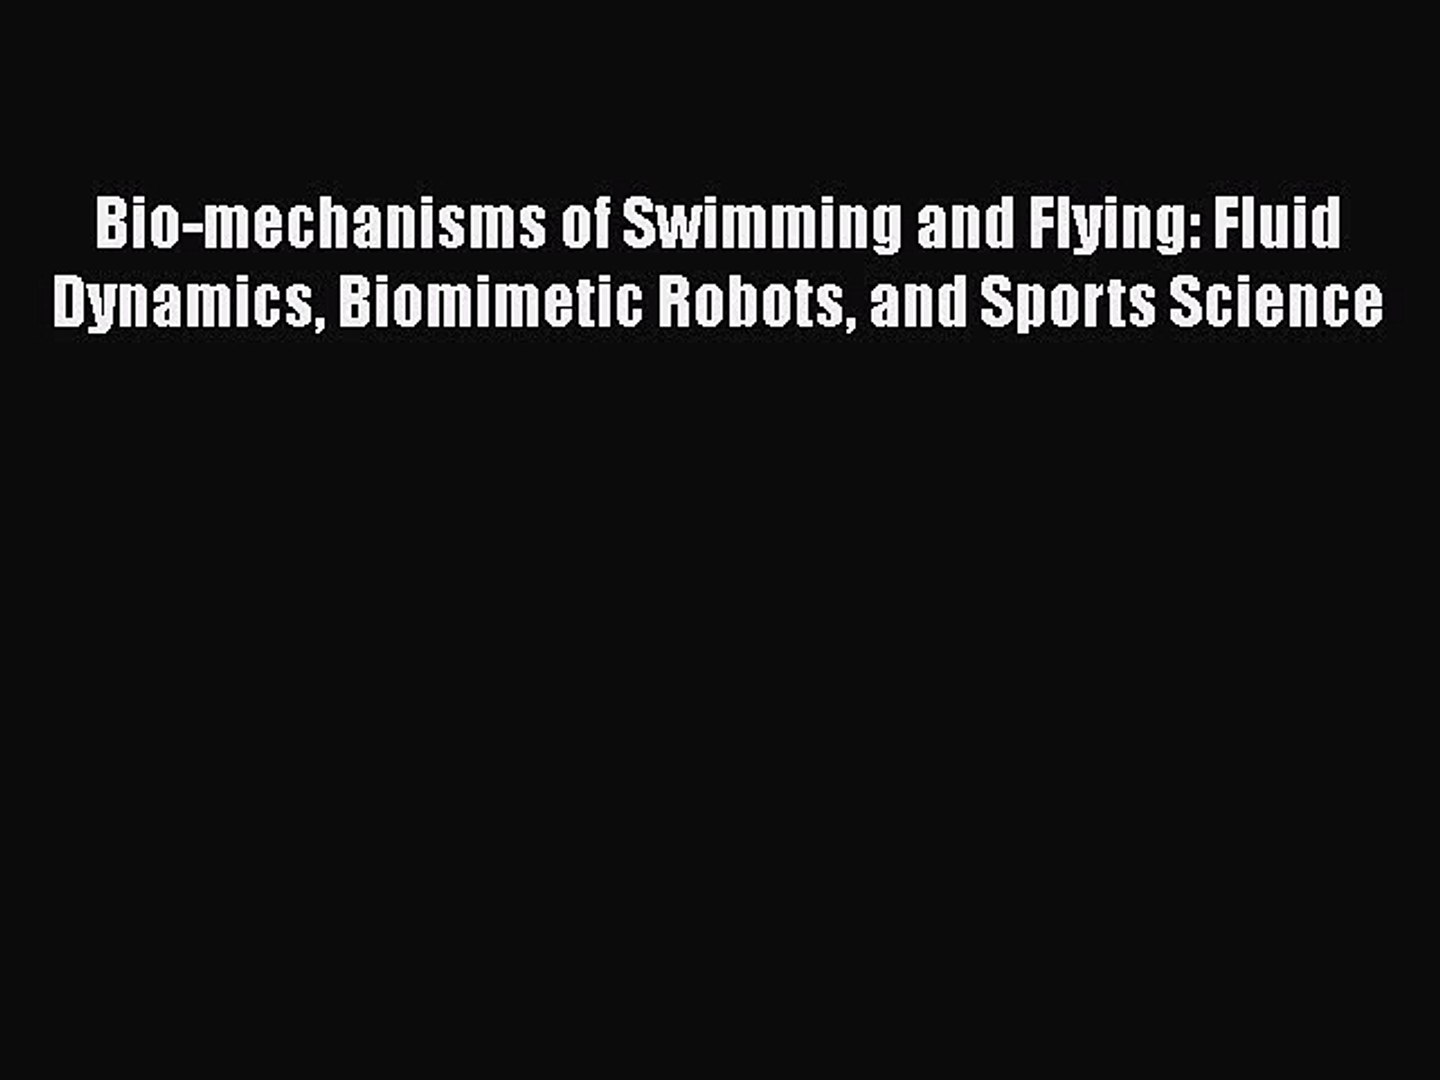 [Read book] Bio-mechanisms of Swimming and Flying: Fluid Dynamics  Biomimetic Robots and Sports